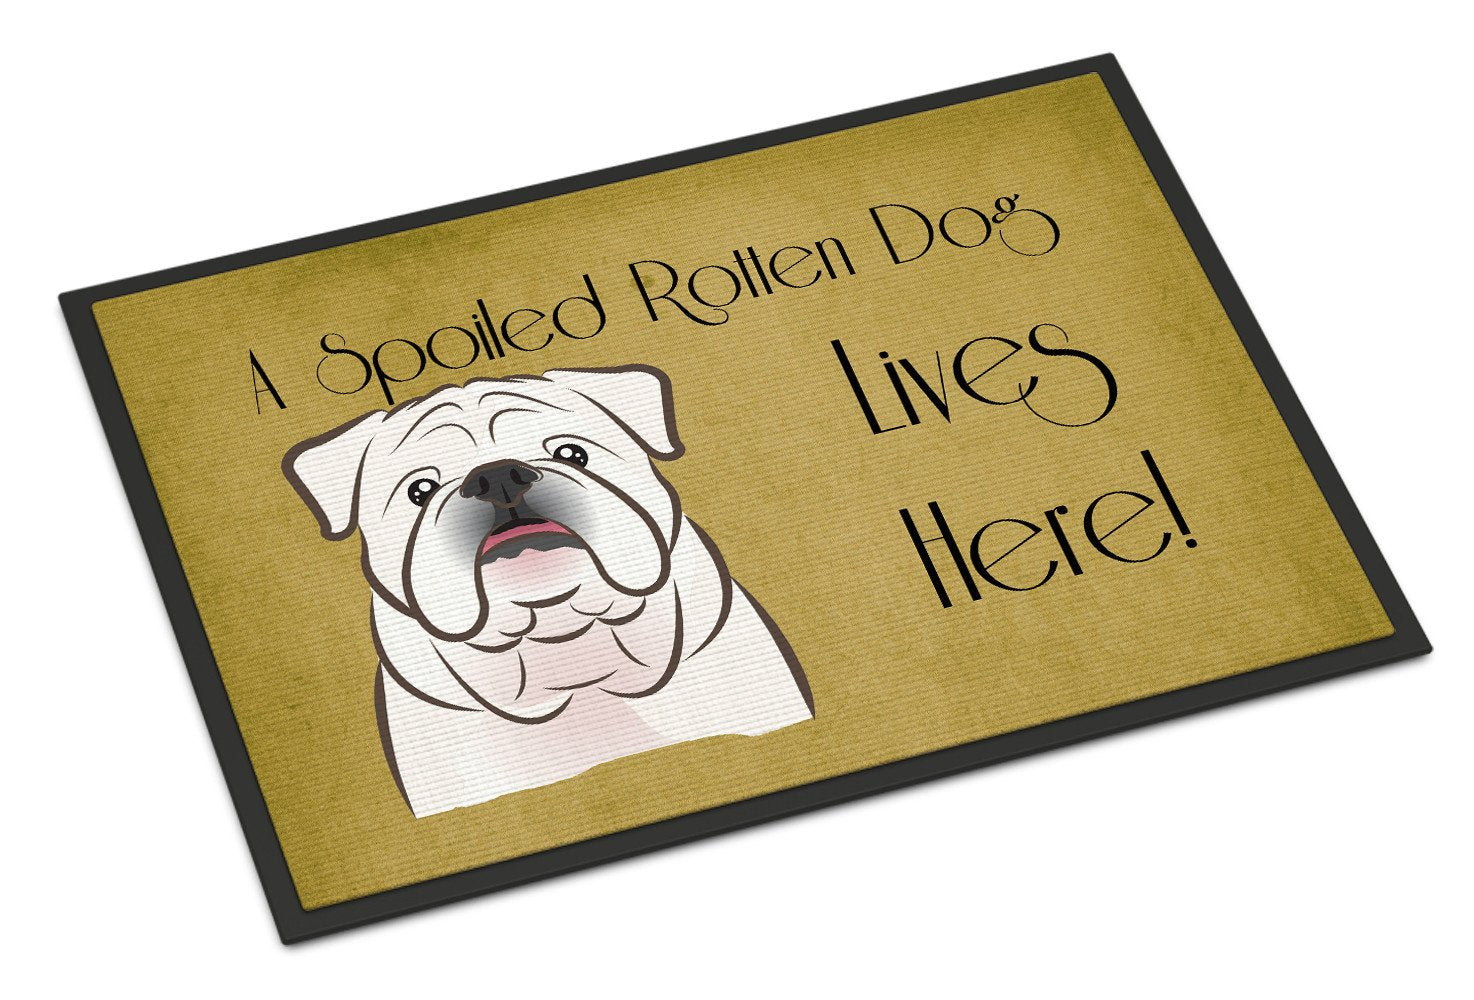 White English Bulldog  Spoiled Dog Lives Here Indoor or Outdoor Mat 18x27 BB1468MAT - the-store.com